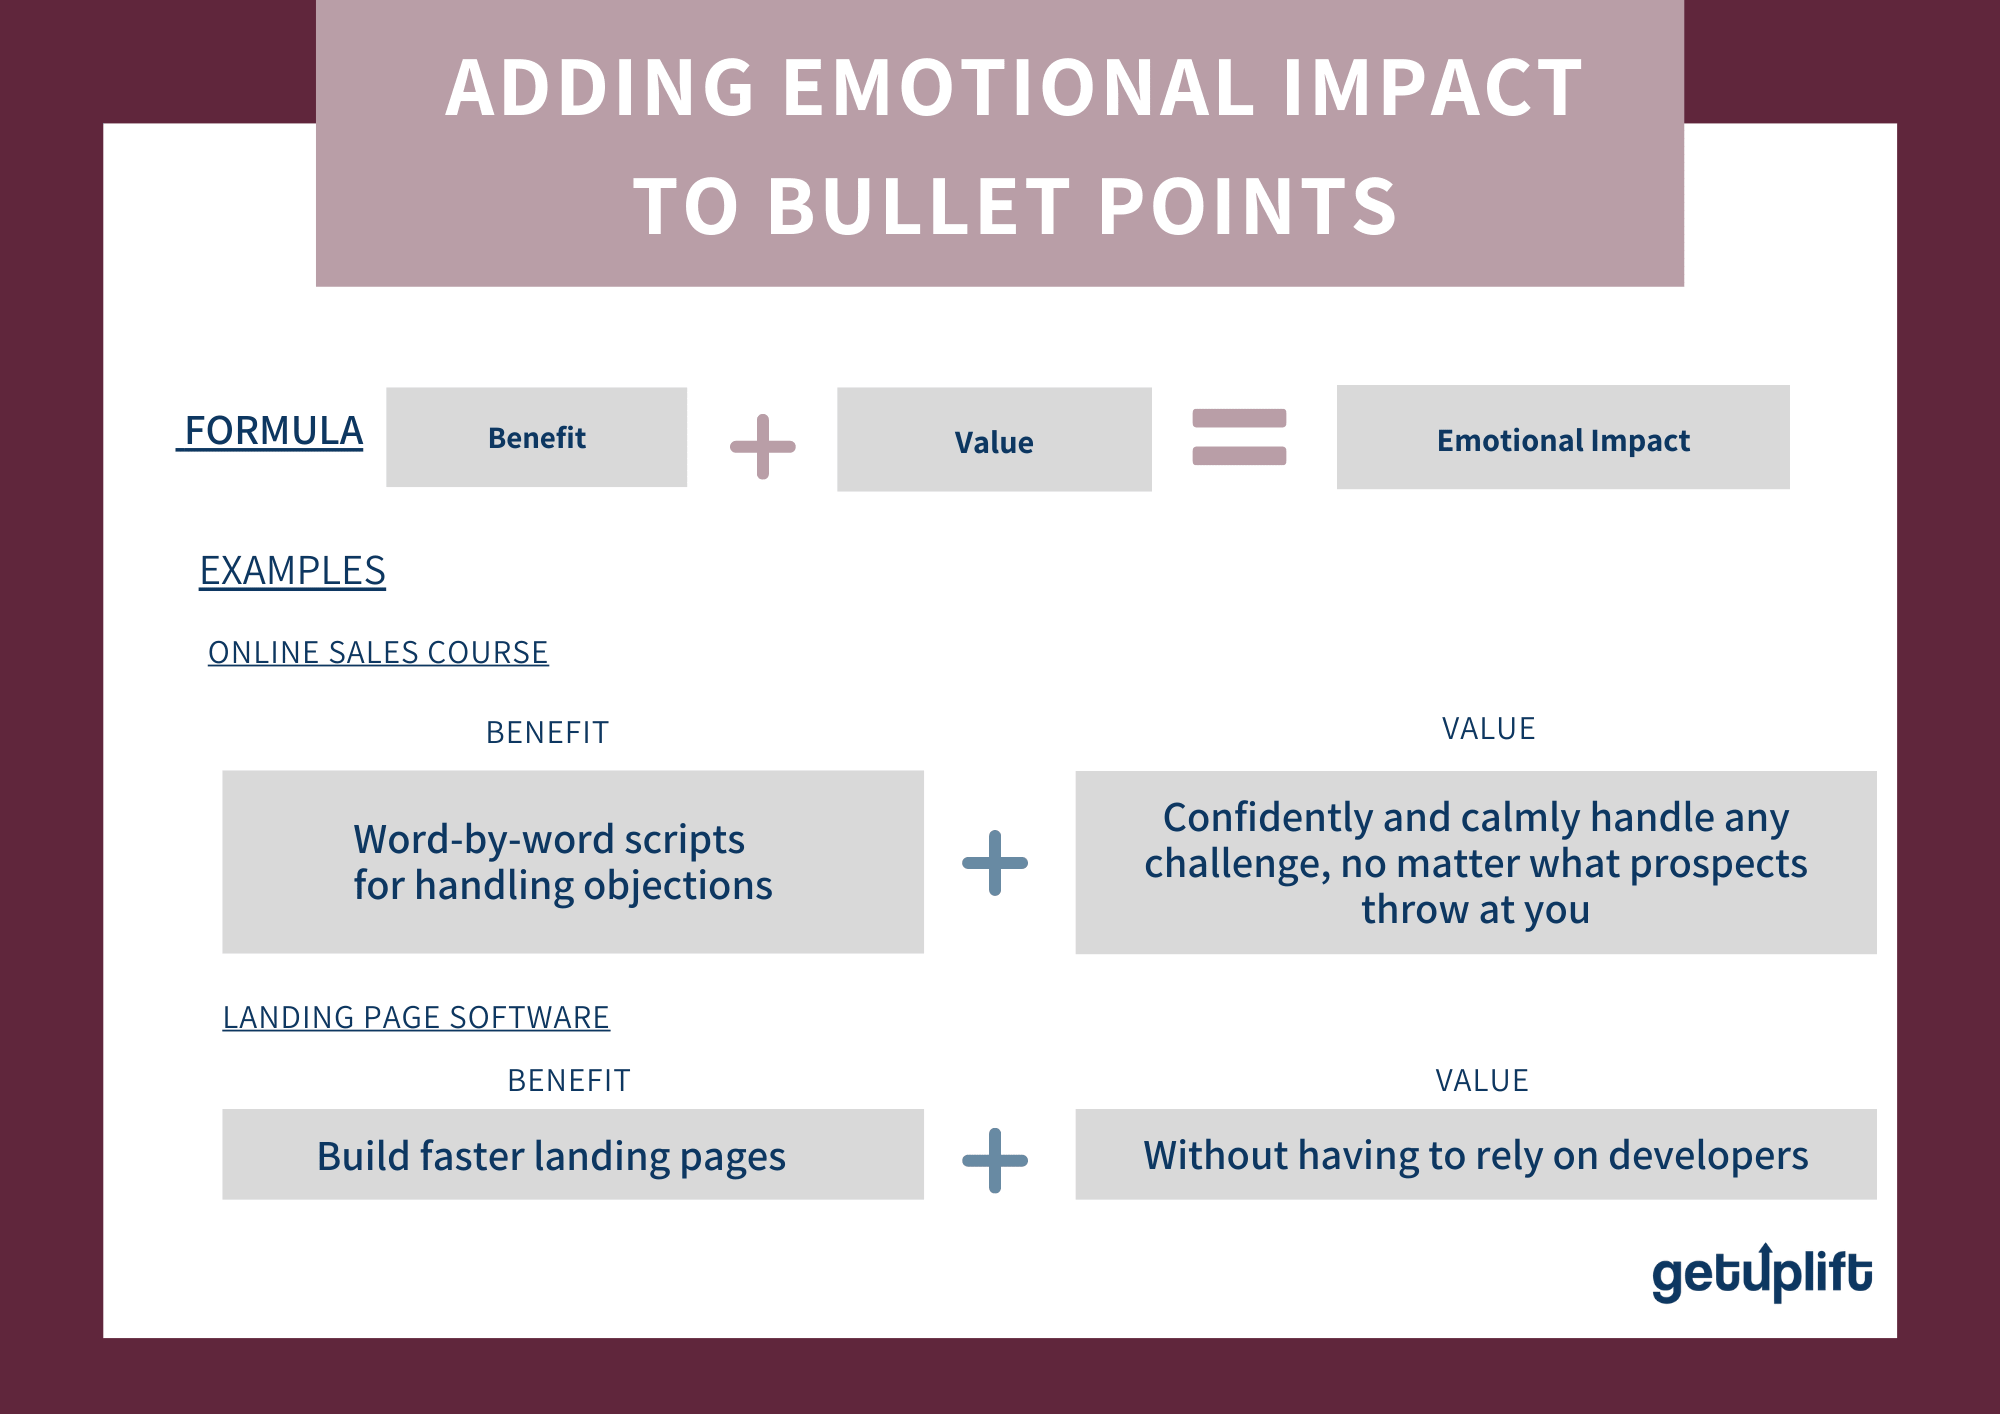 How to add emotional impact to bullet points for landing page optimization